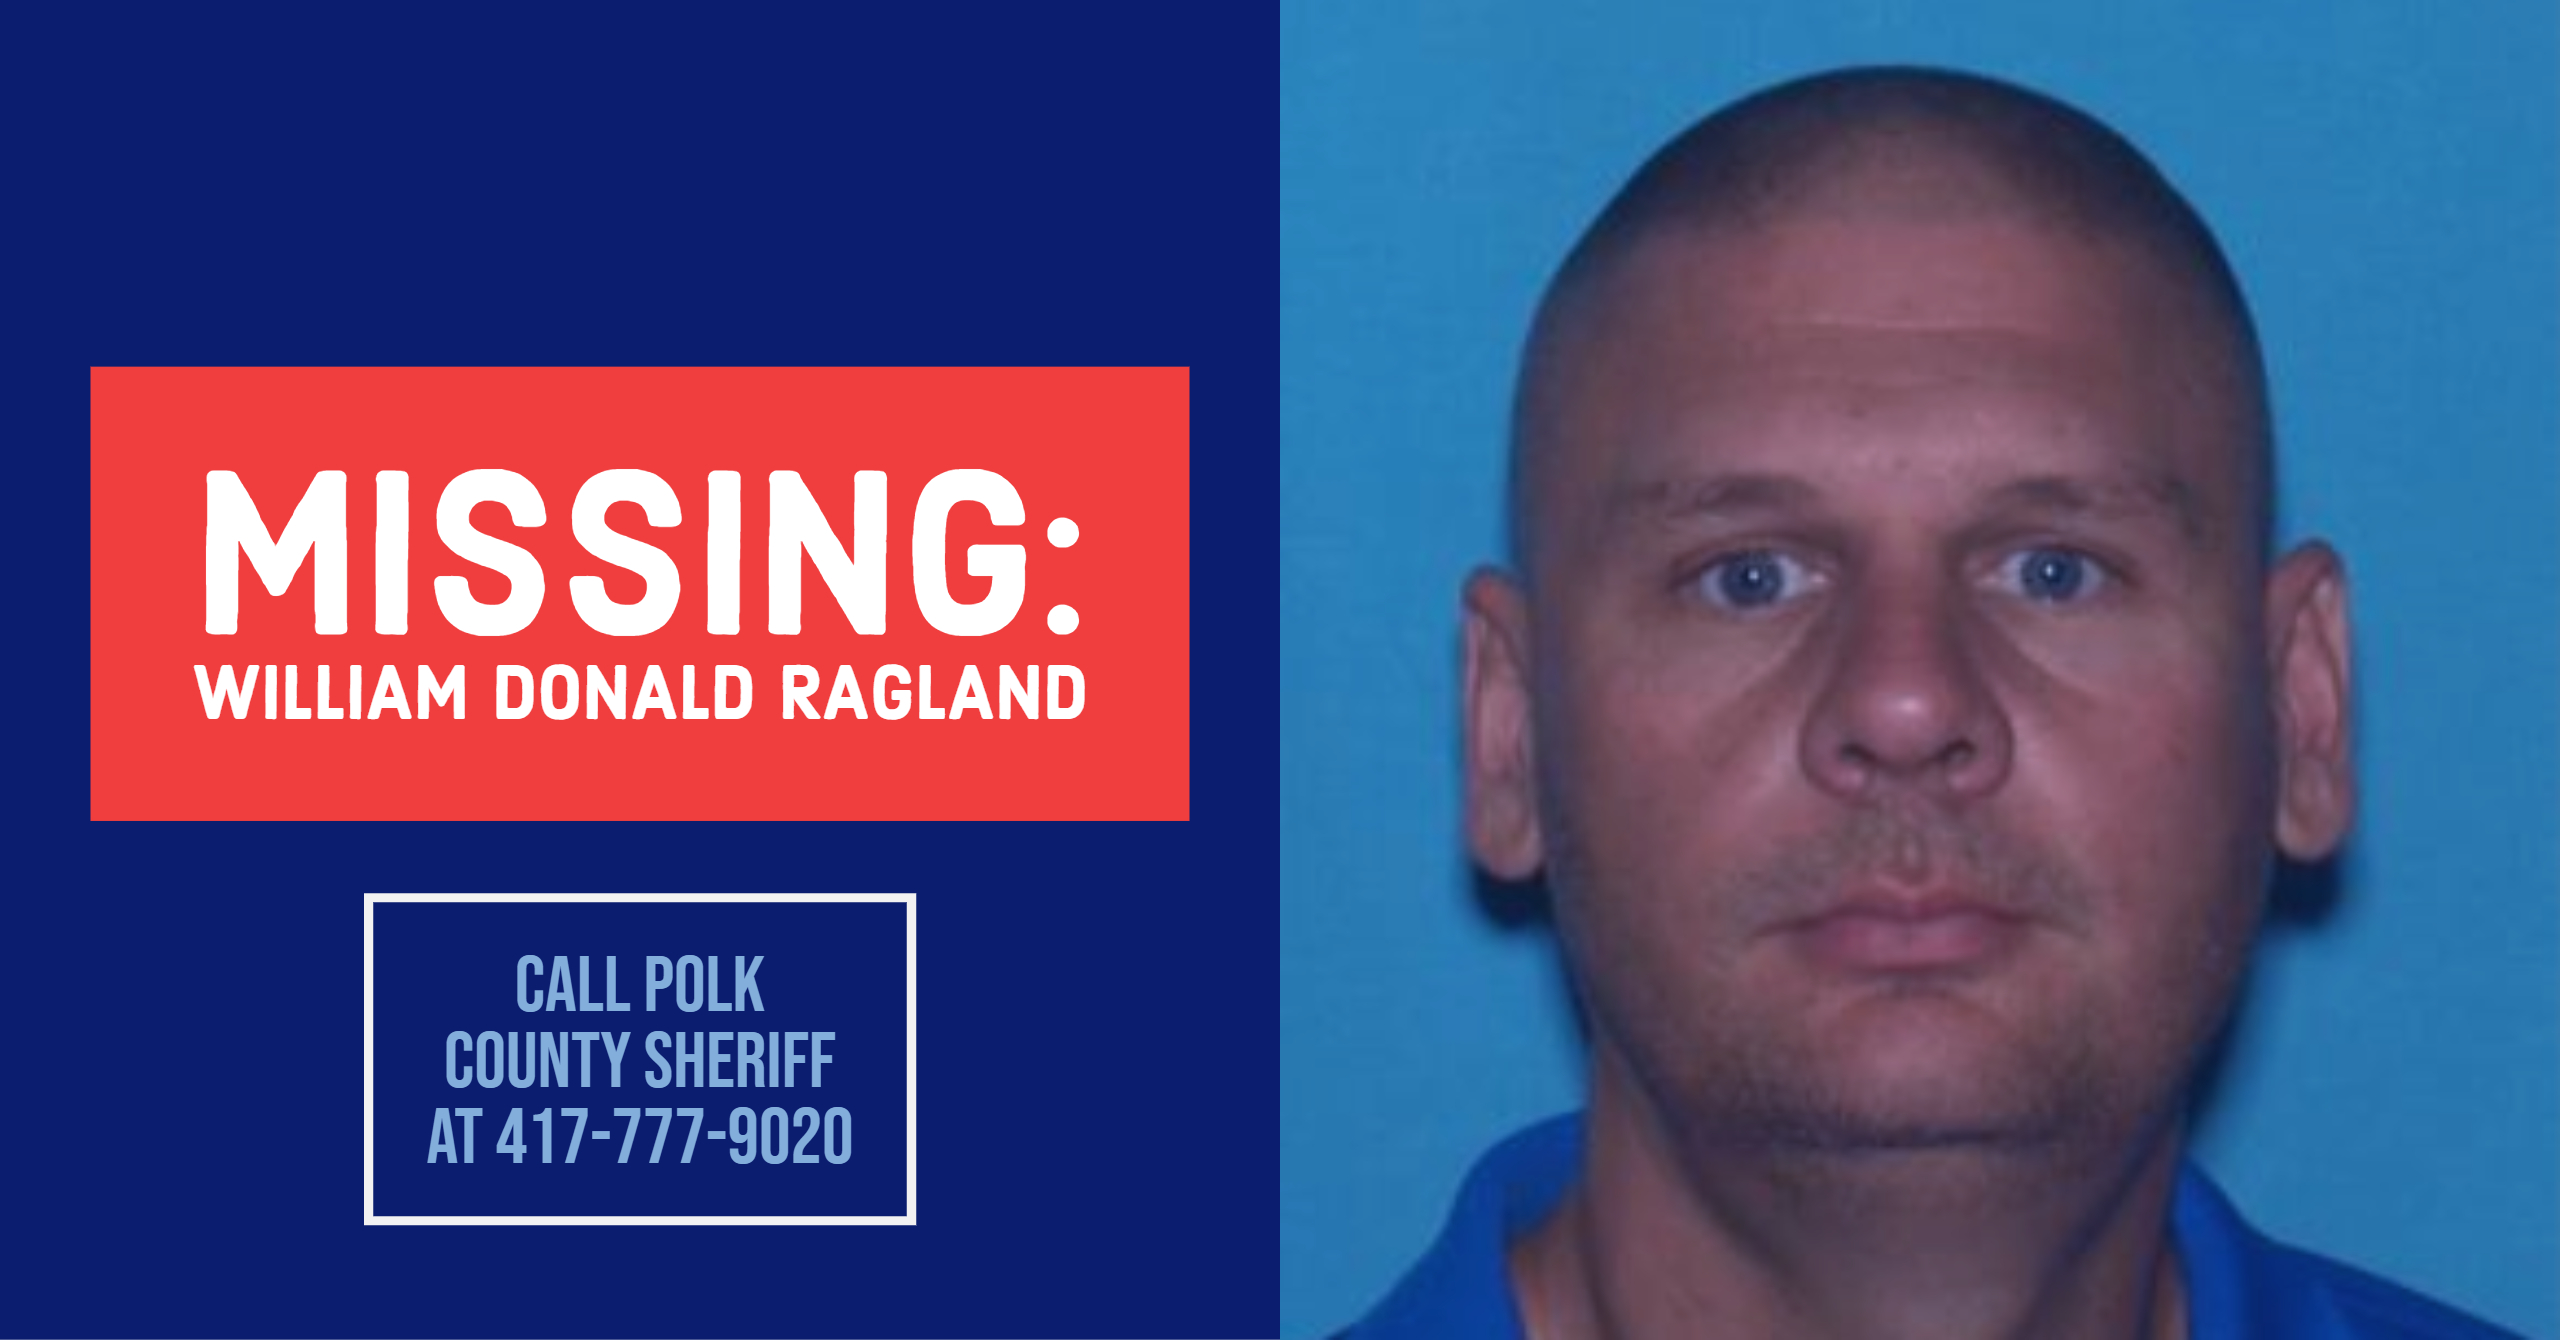 MISSING PERSON: Polk County Sheriff looking for 41-year-old